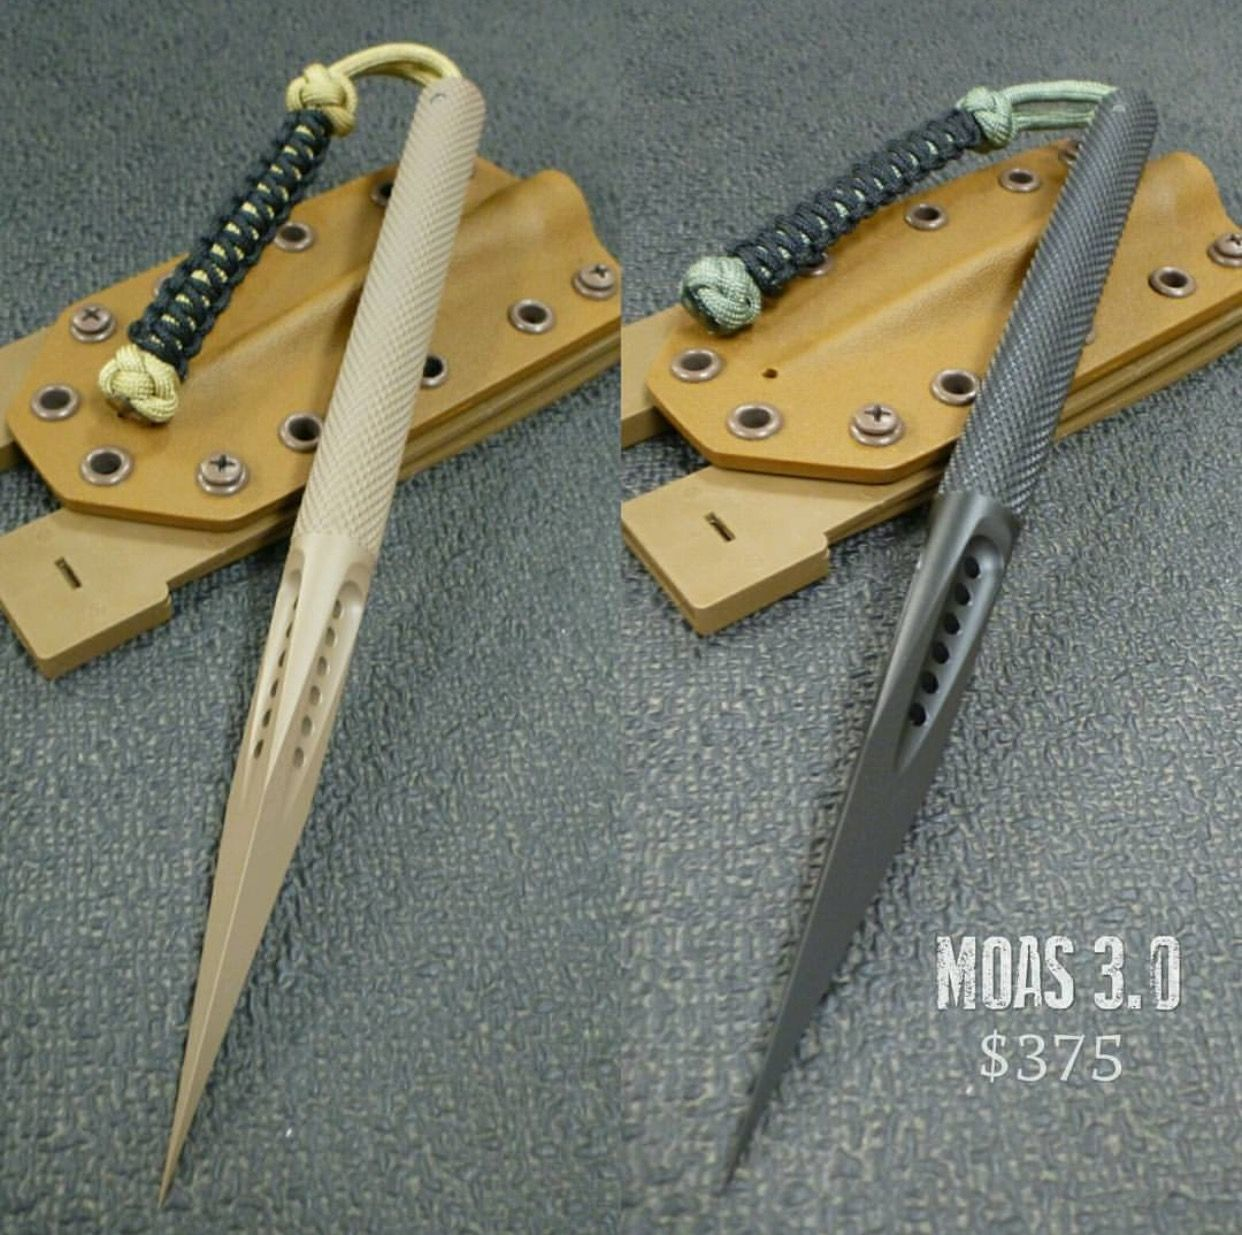 MOAS 3 0 | Weapons | Combat knives, Tactical knives, Knives, swords